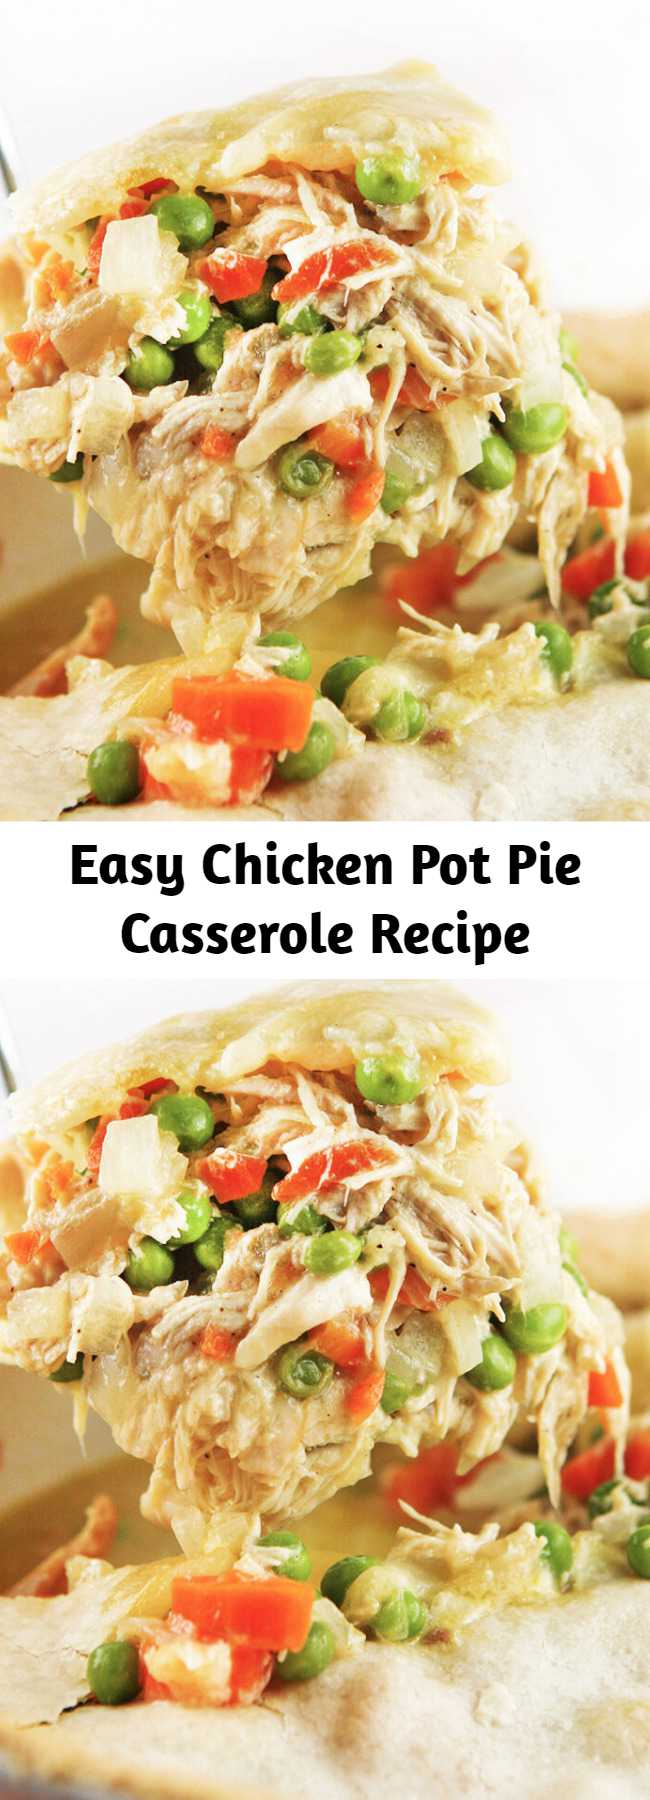 Easy Chicken Pot Pie Casserole Recipe - Chicken Pot Pie Casserole is a super easy and delicious dinner that comes together quickly. It will quickly become a family favorite!